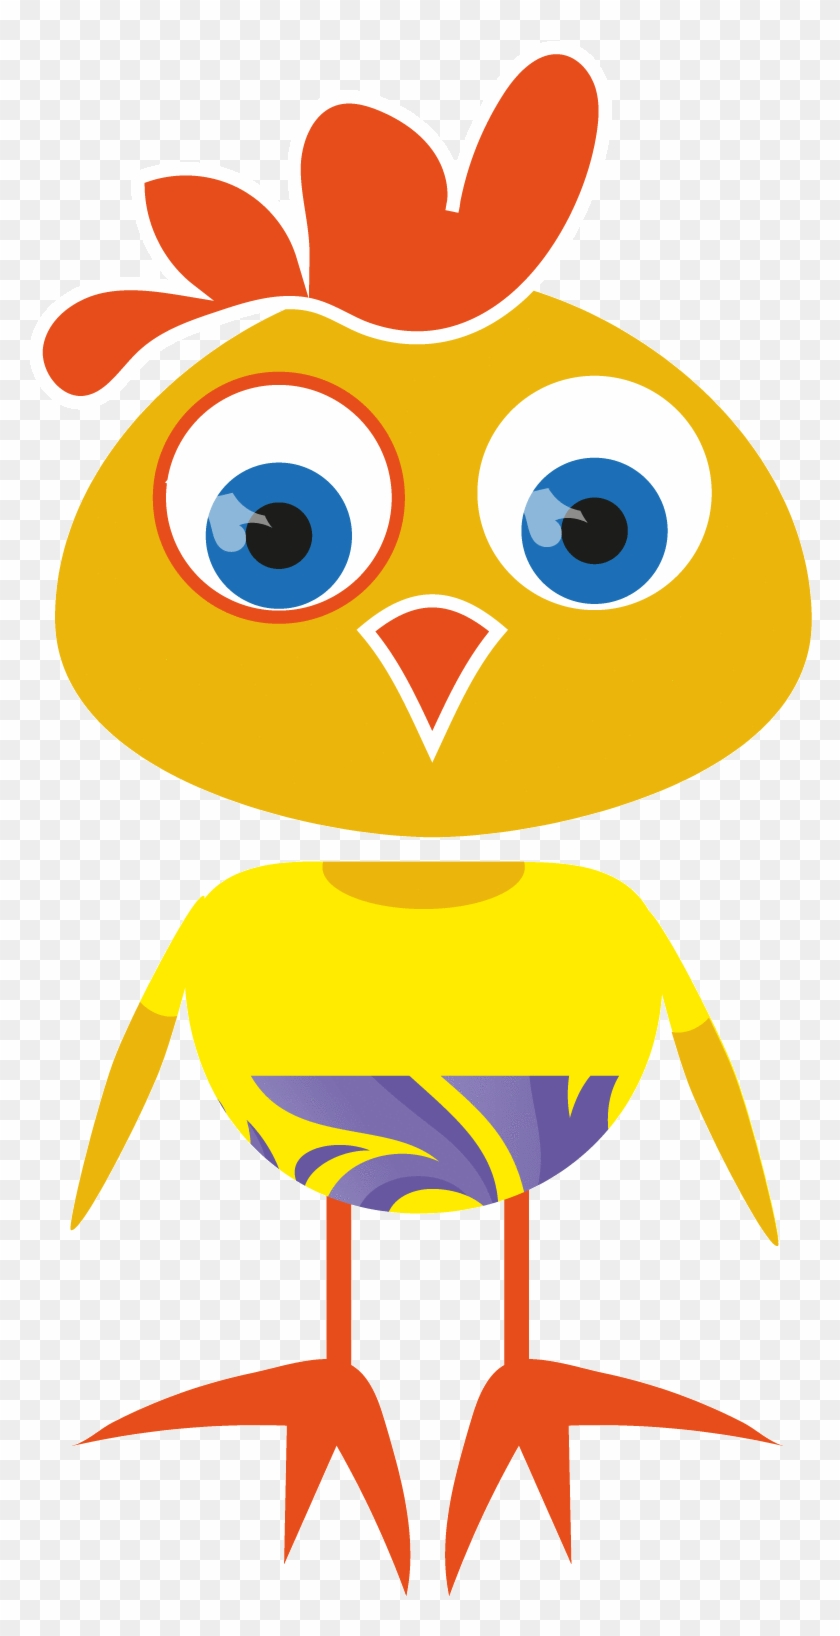 Check Out This New Super Cute Cartoon Chick Vector - Vector Graphics #1043192